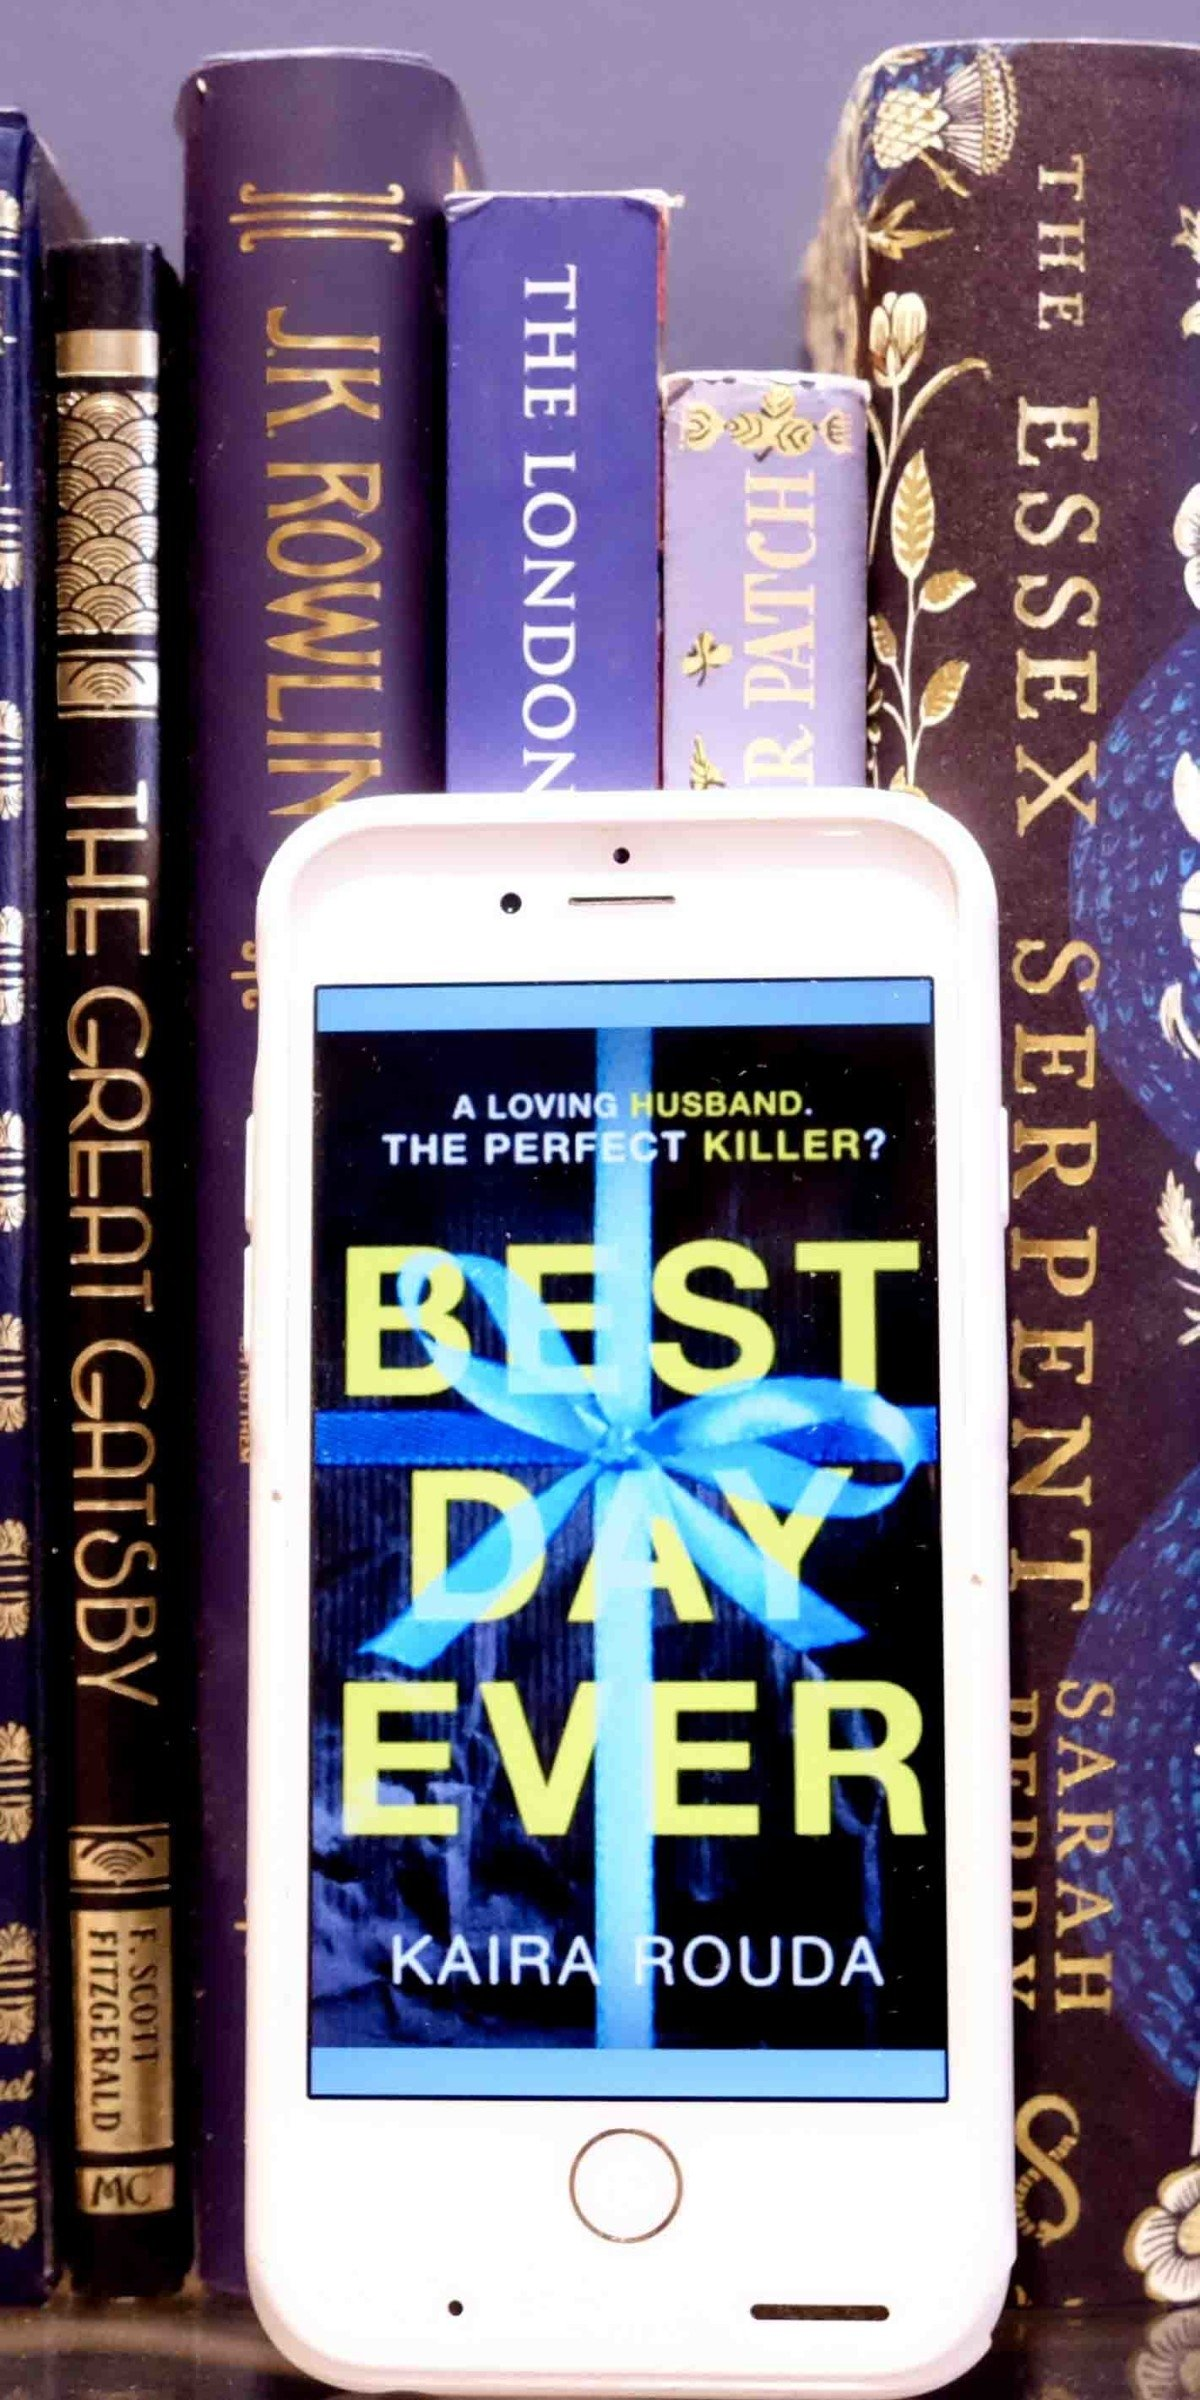 Pin Image of books on shelf the best day ever